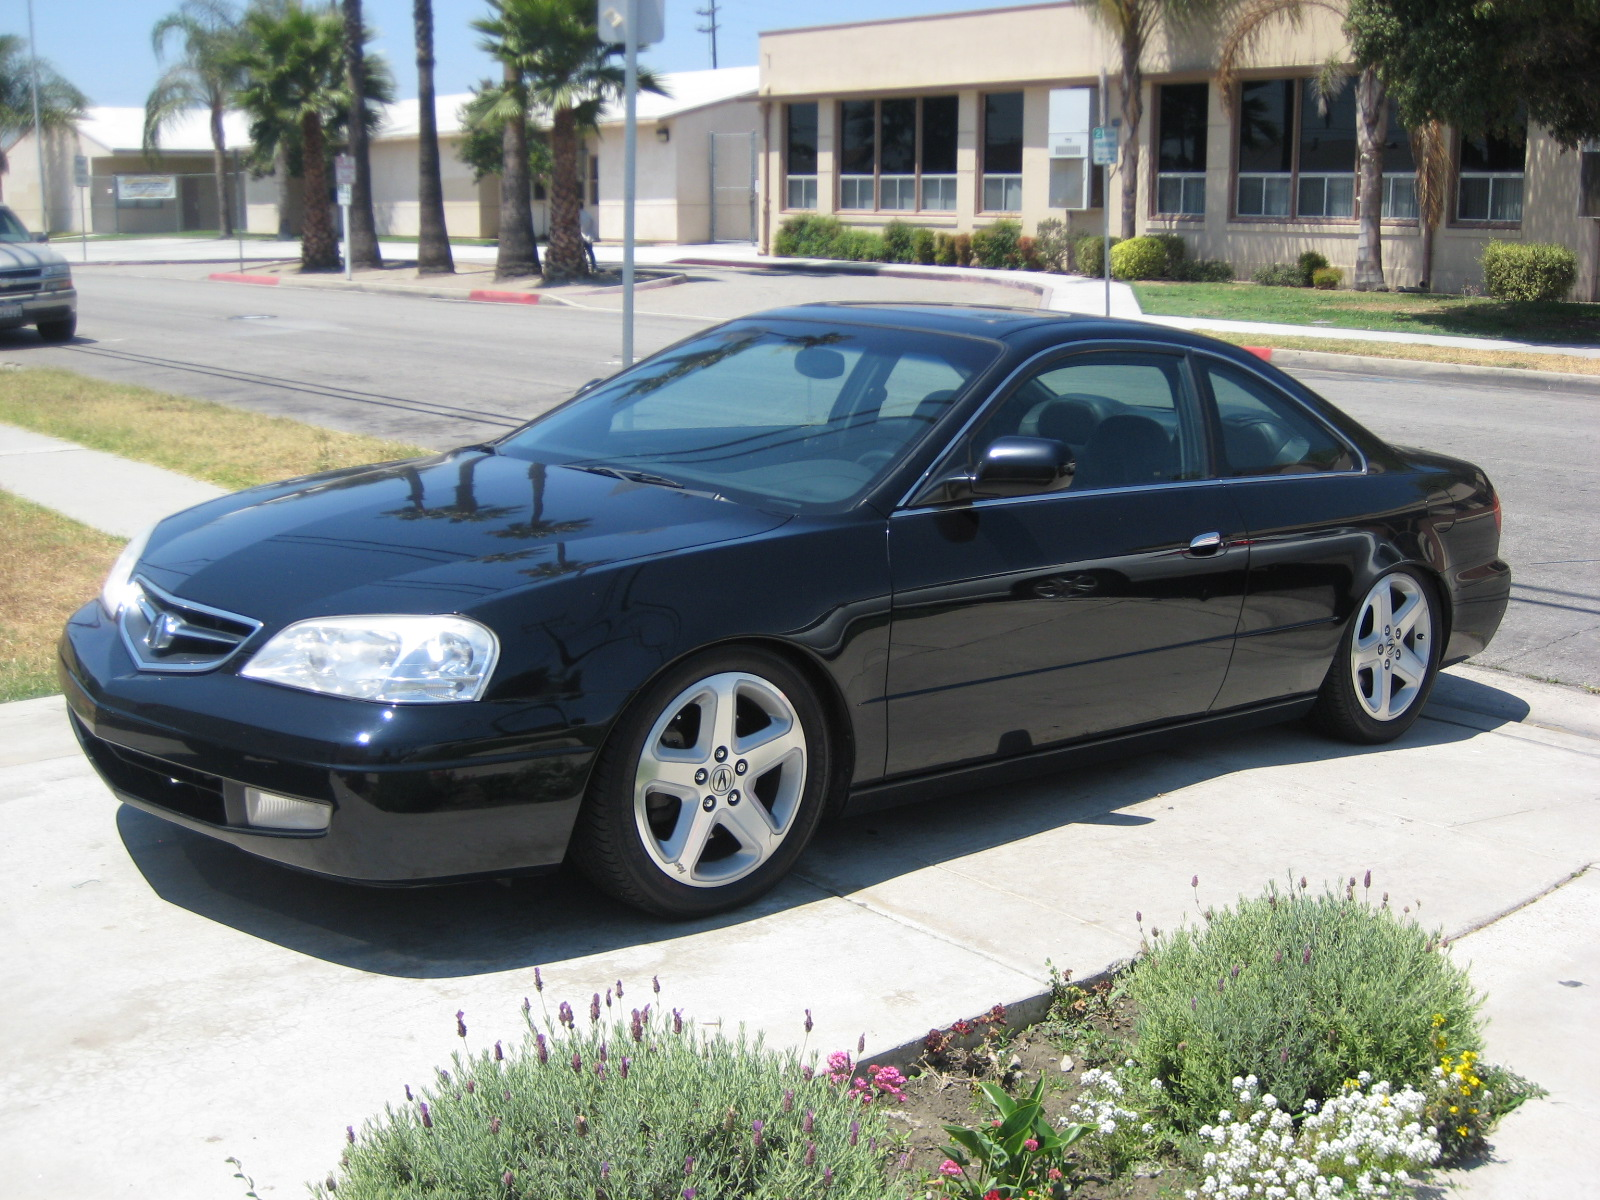 Picture of 2001 Acura CL 2 Dr 3.2 Type-S Coupe